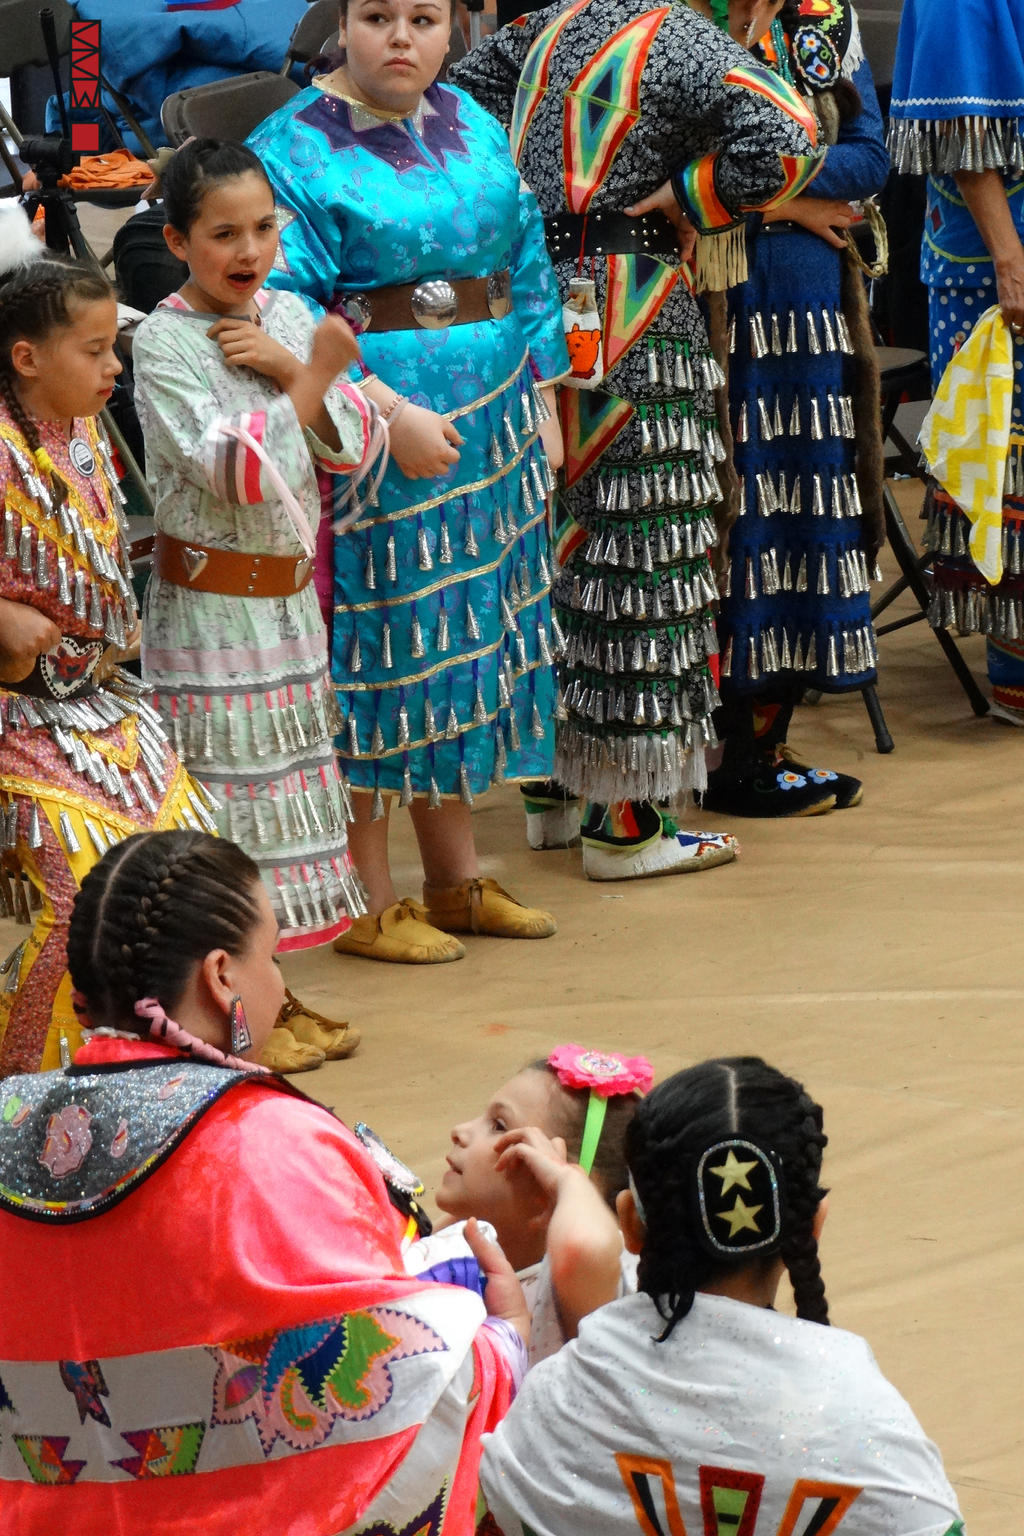 41nd Annual AIRO Pow Wow 5/2/2015 6:21PM by Crigger